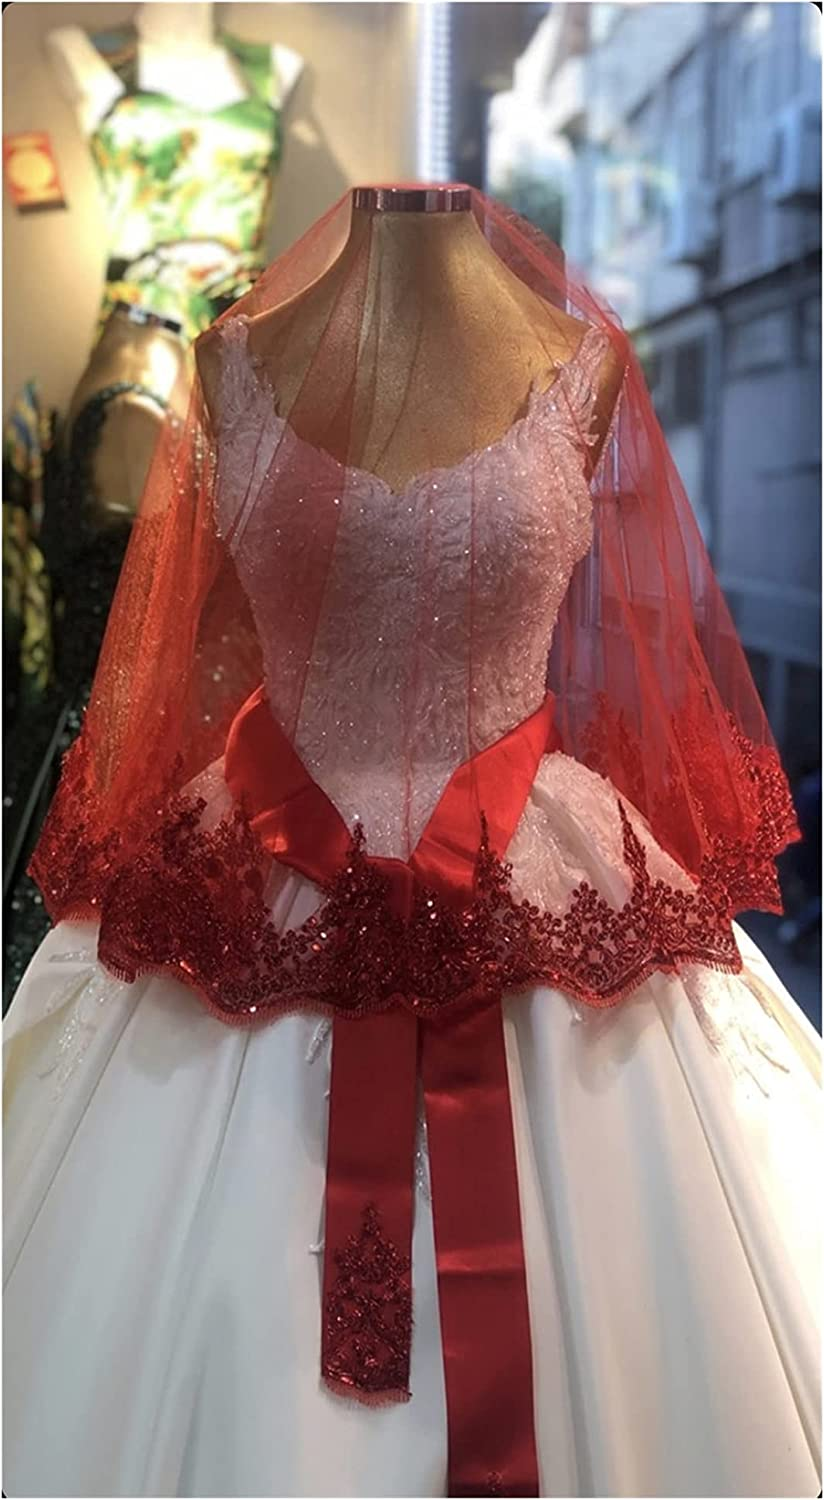 HAQTXI Short Bridal Veil Set Night Wedding Ceremony Accessory Wire Break Lace Shimmer Claret Red Purple Green Sax Blue Fuchsia (Color : Red, Item Length : 150cm)